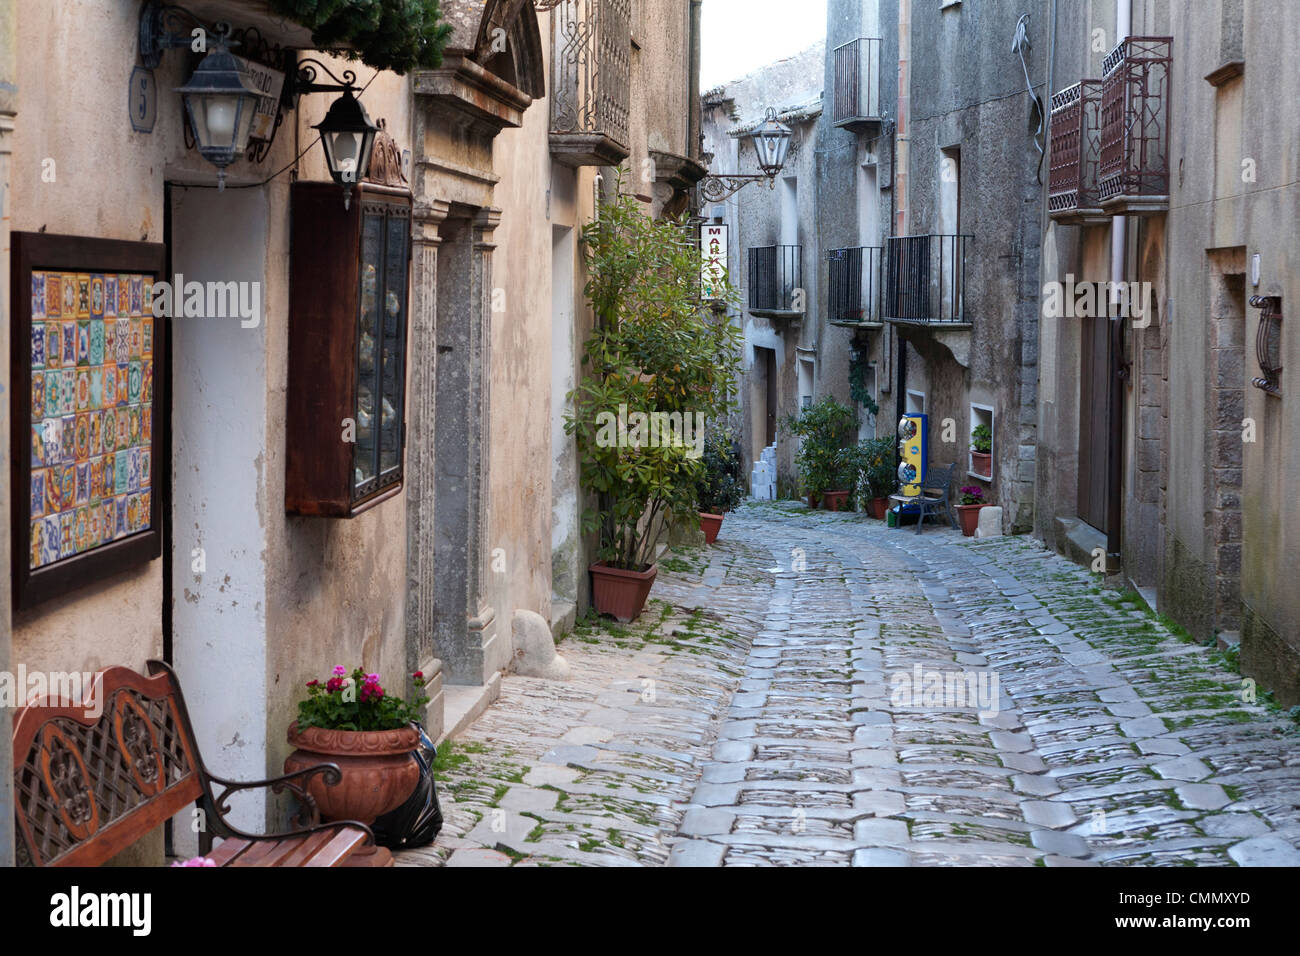 View down narrow cobbled street, Erice, Sicily, Italy, Europe - Stock Image